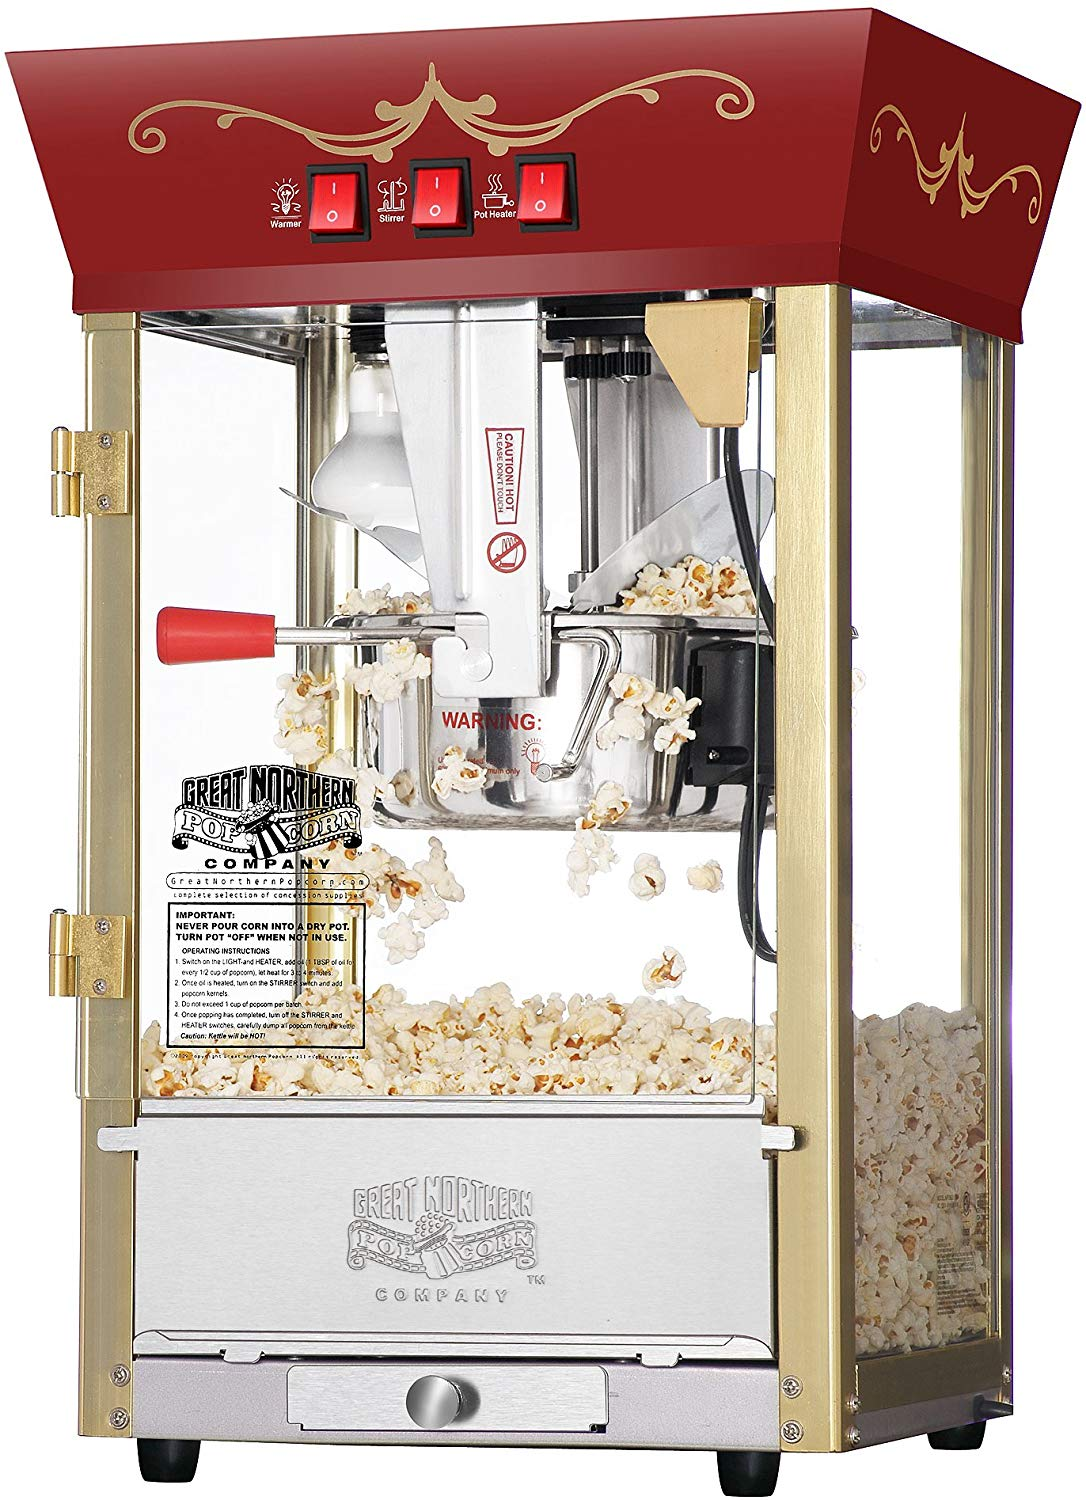 The great northern popcorn red matinee movie theater style